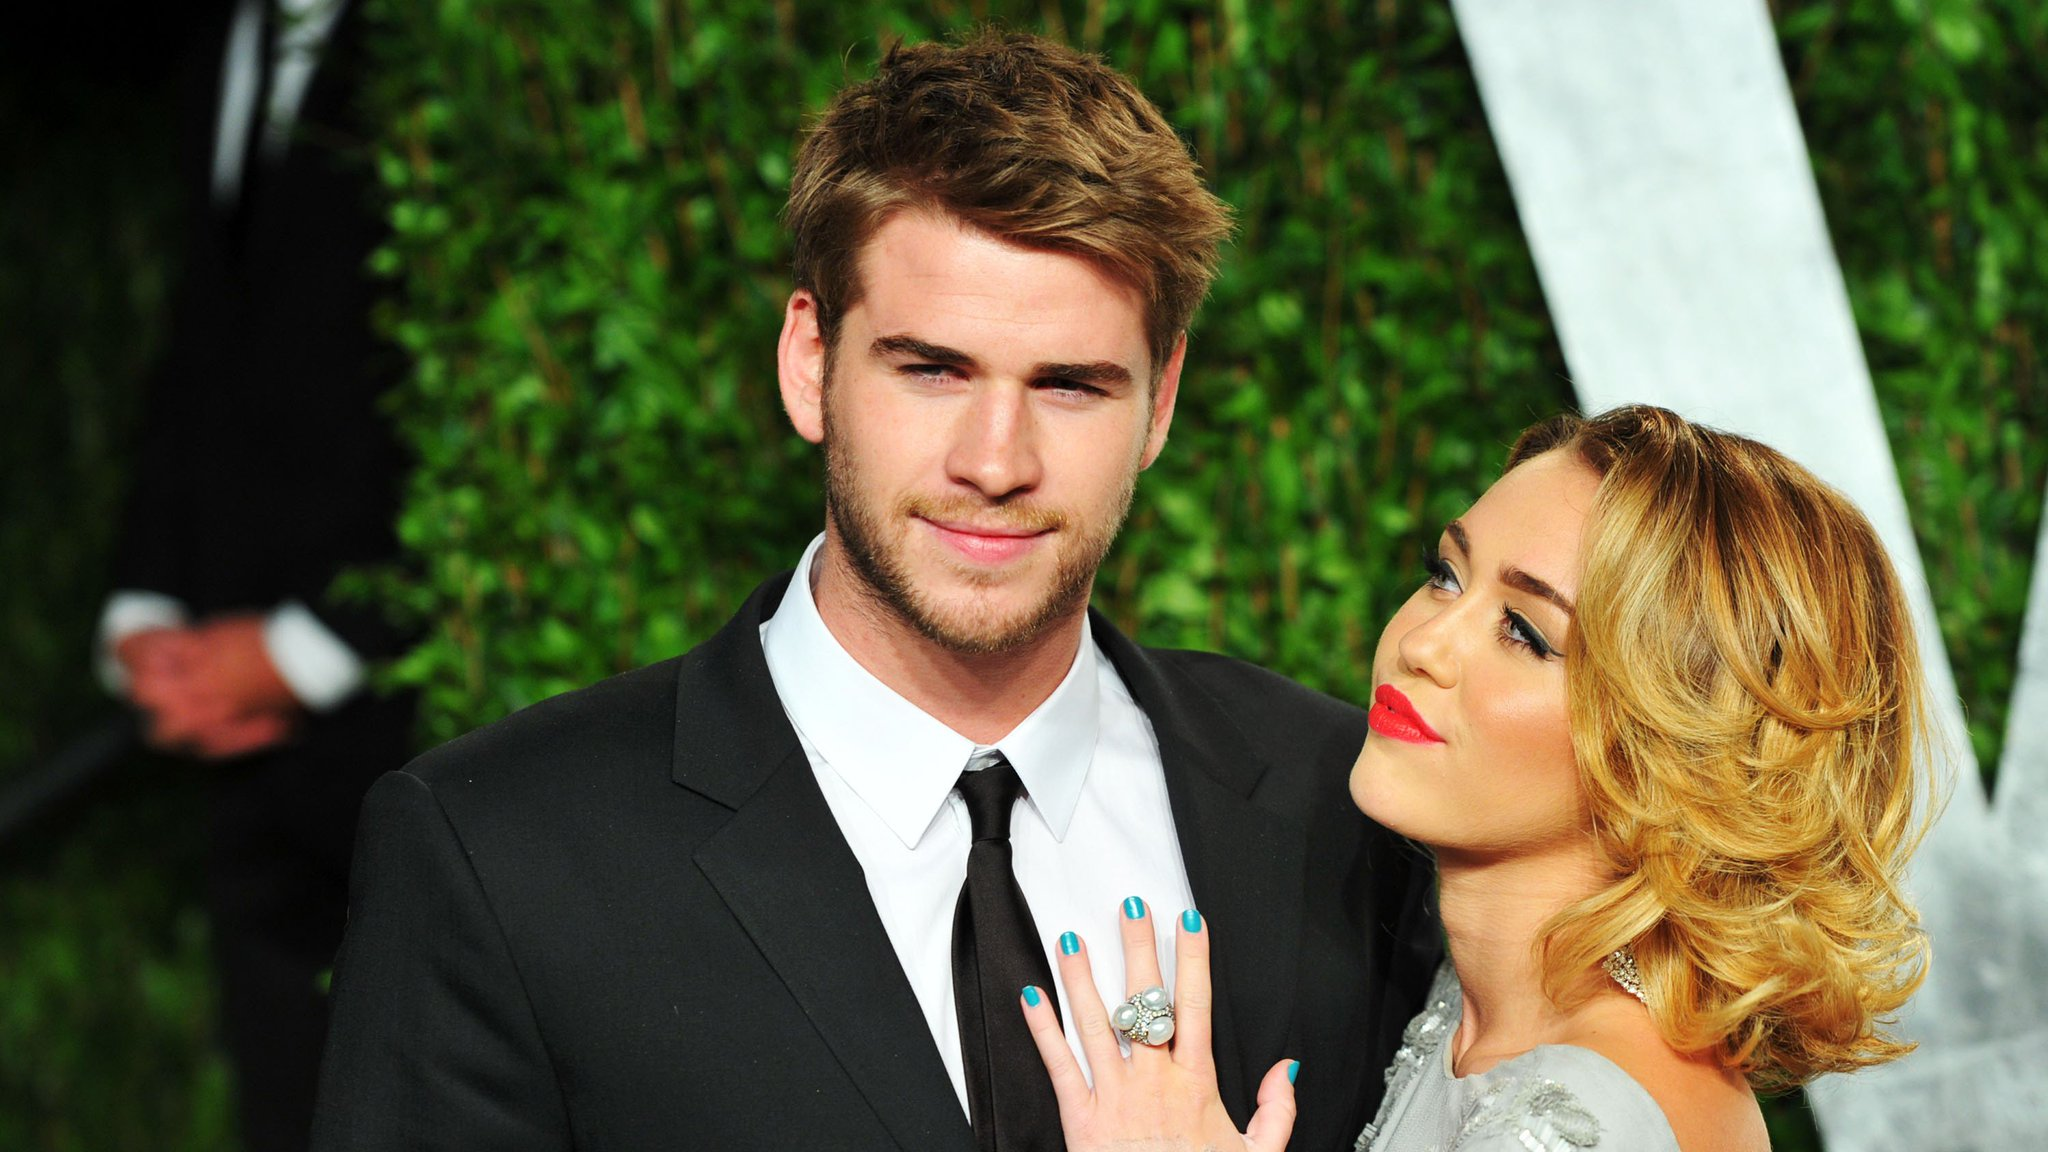 Miley Cyrus just posted a subtle tribute to her music muse Liam Hemsworth: https://t.co/3UvbmDfVKI https://t.co/3IGRcH0xrL